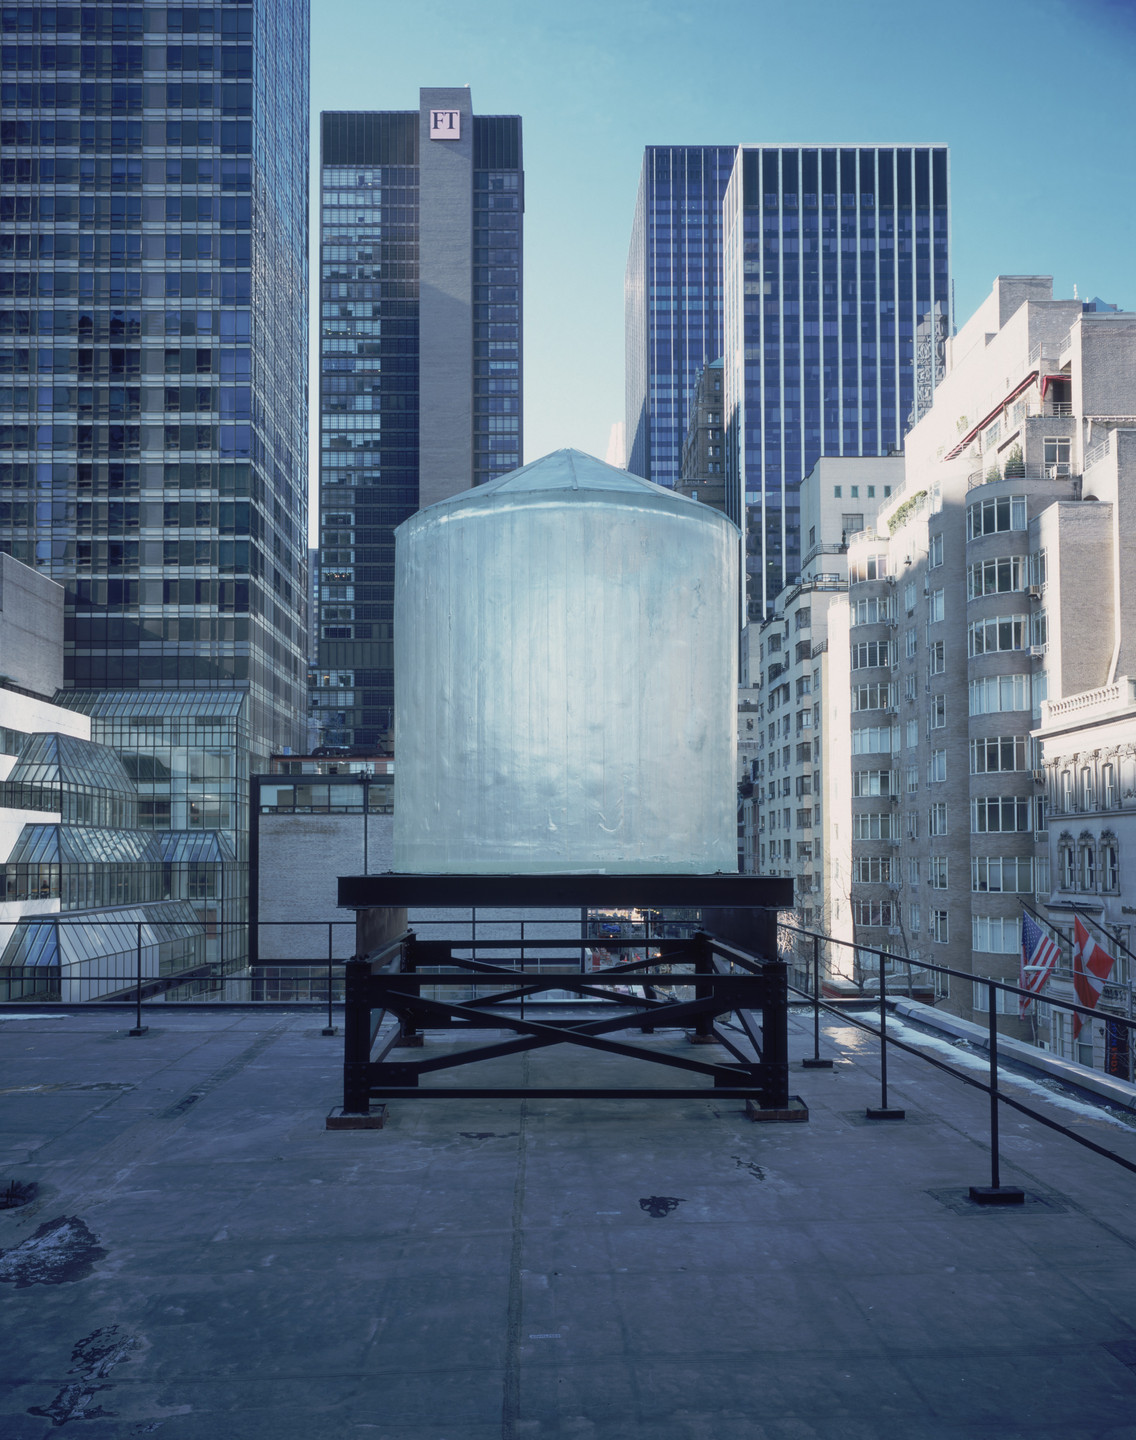 Rachel Whiteread. Water Tower. 1998